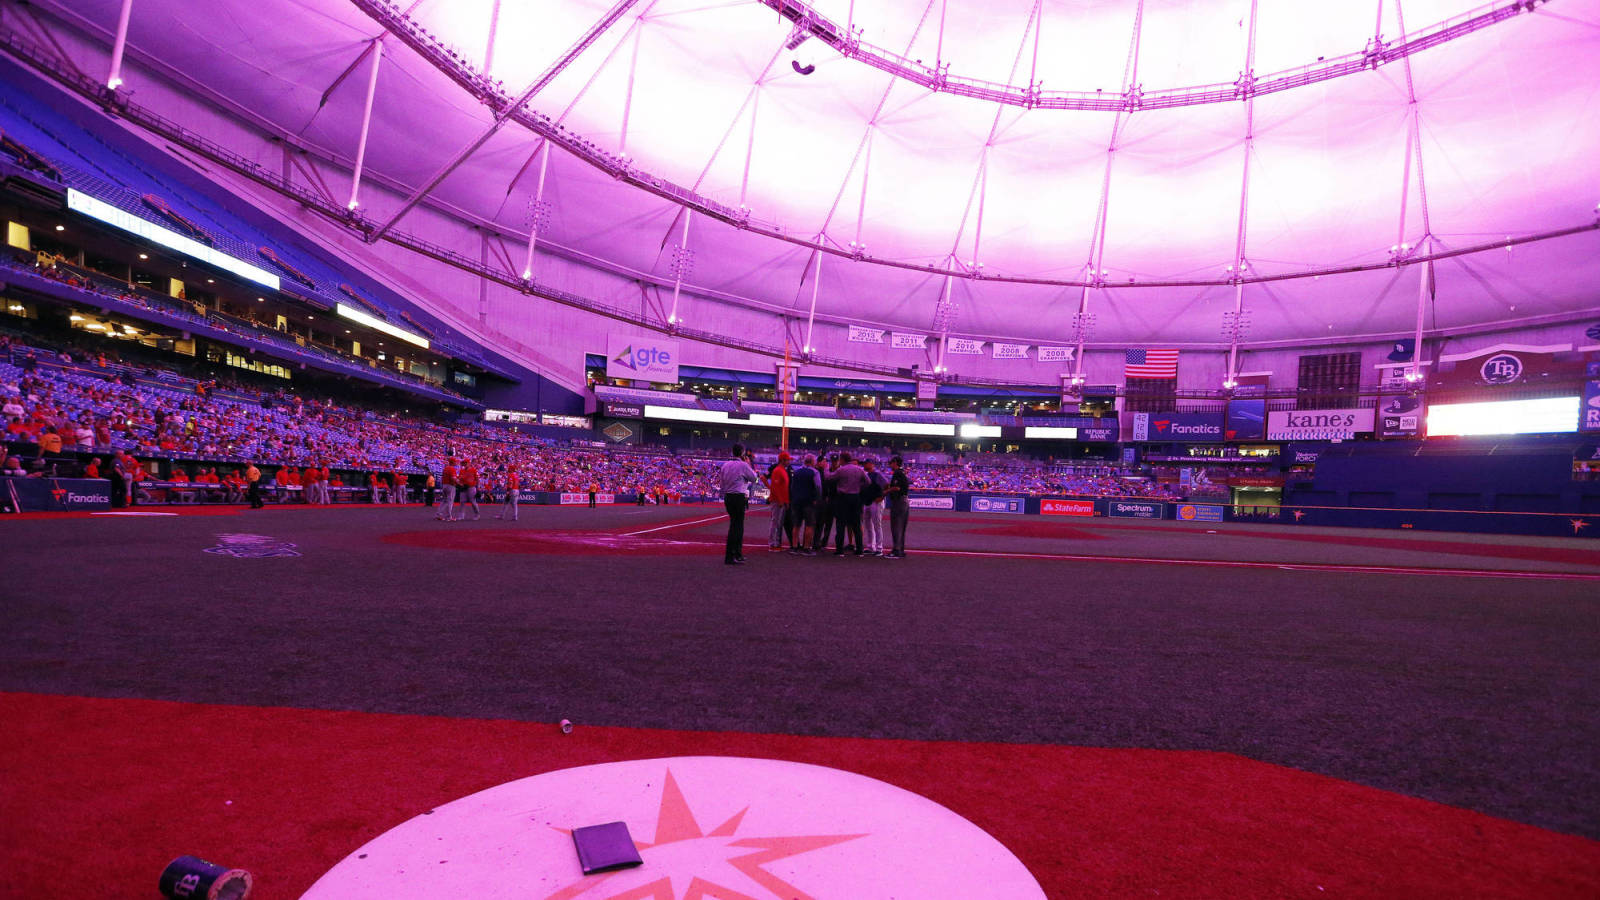 Storm causes power outage, delaying Angels-Rays game